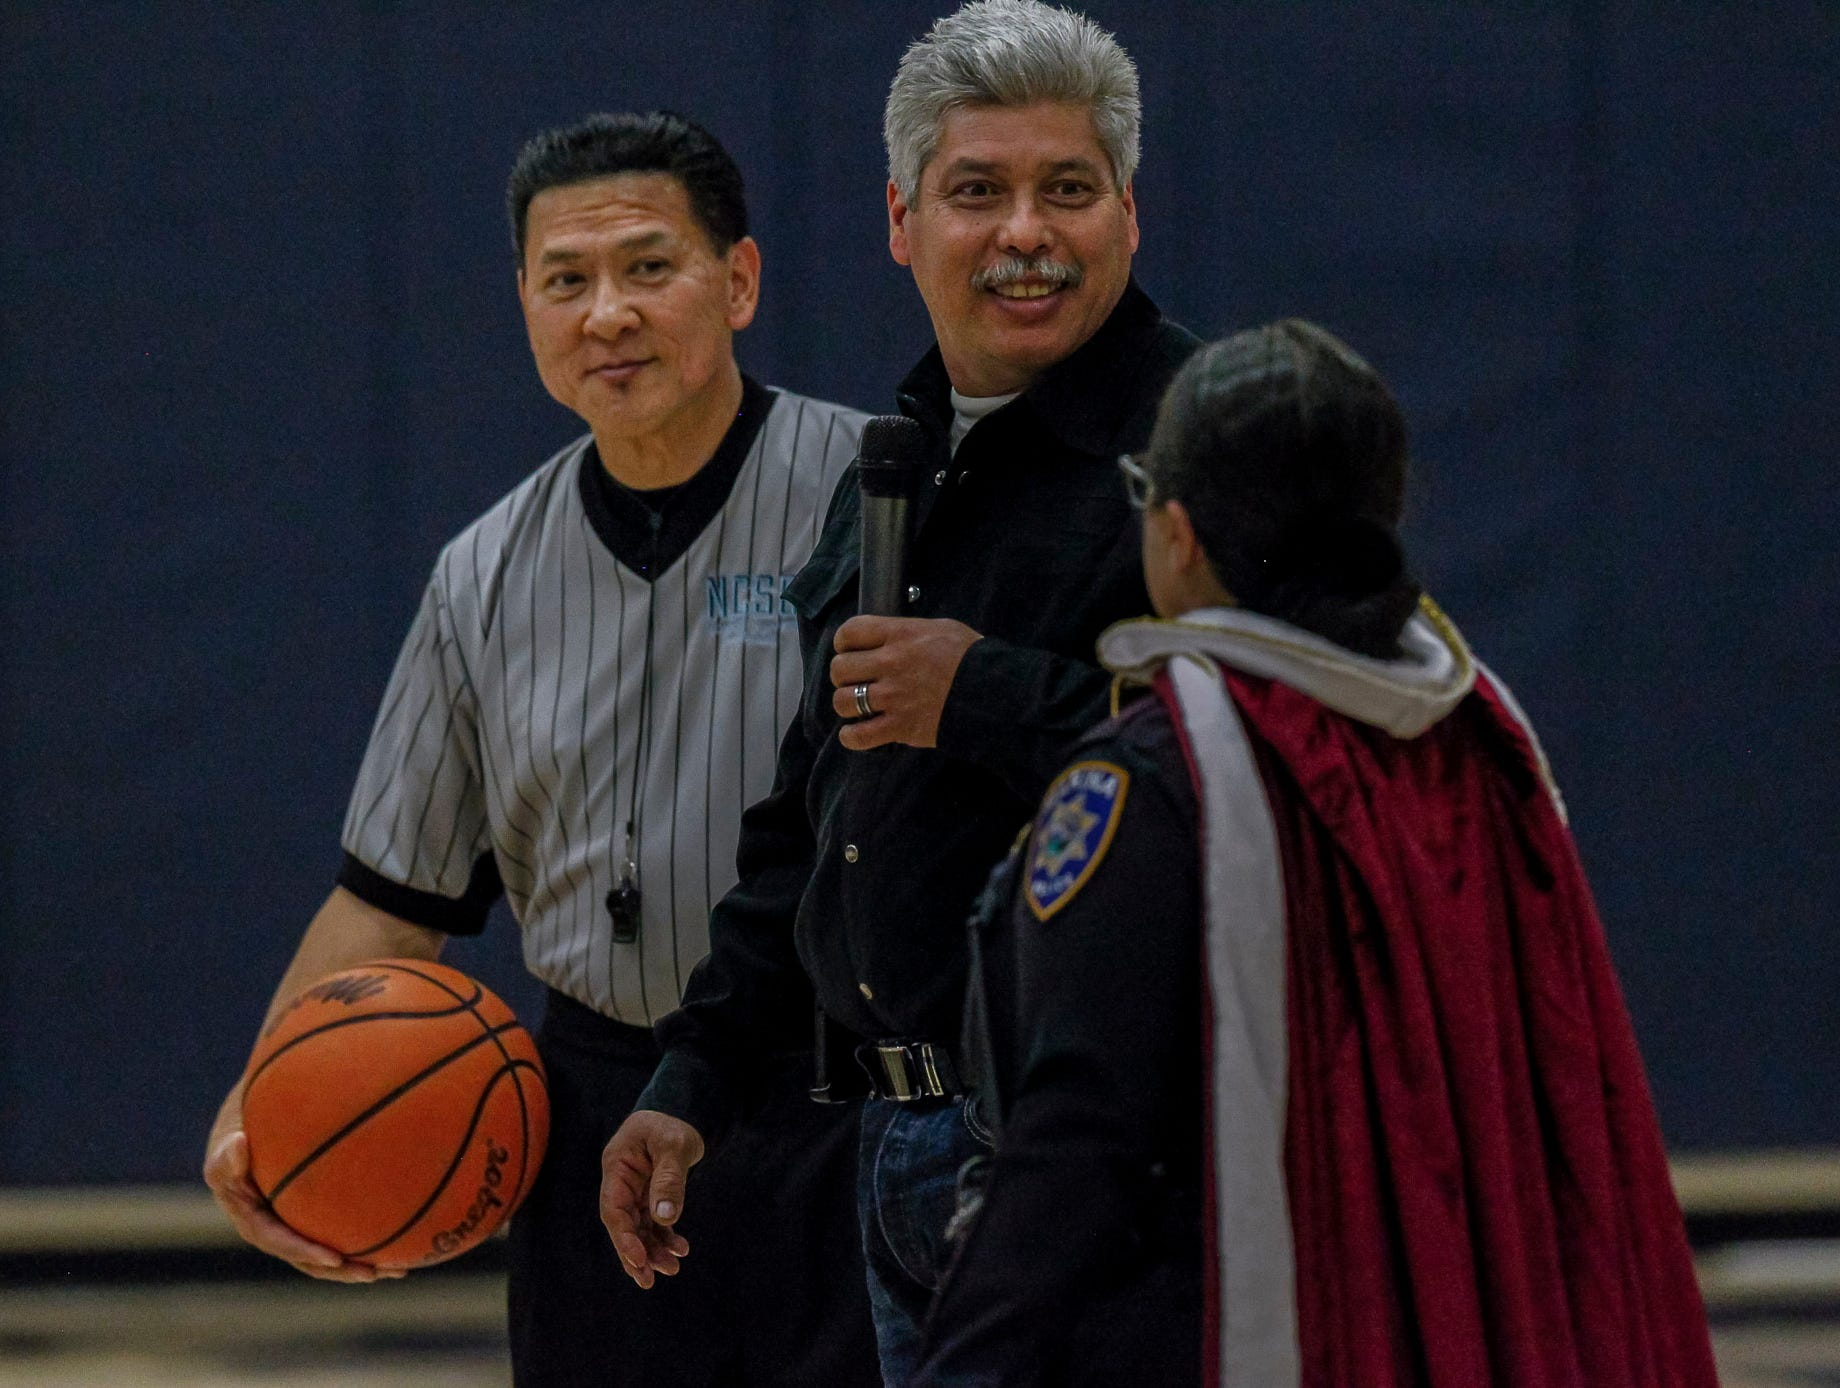 The inaugural Battle of the Badges basketball game between Marina and Salinas Police Departments at CSU Monterey Bay's Sports Complex on Saturday, February 13, 2019 in Seaside, Calif.